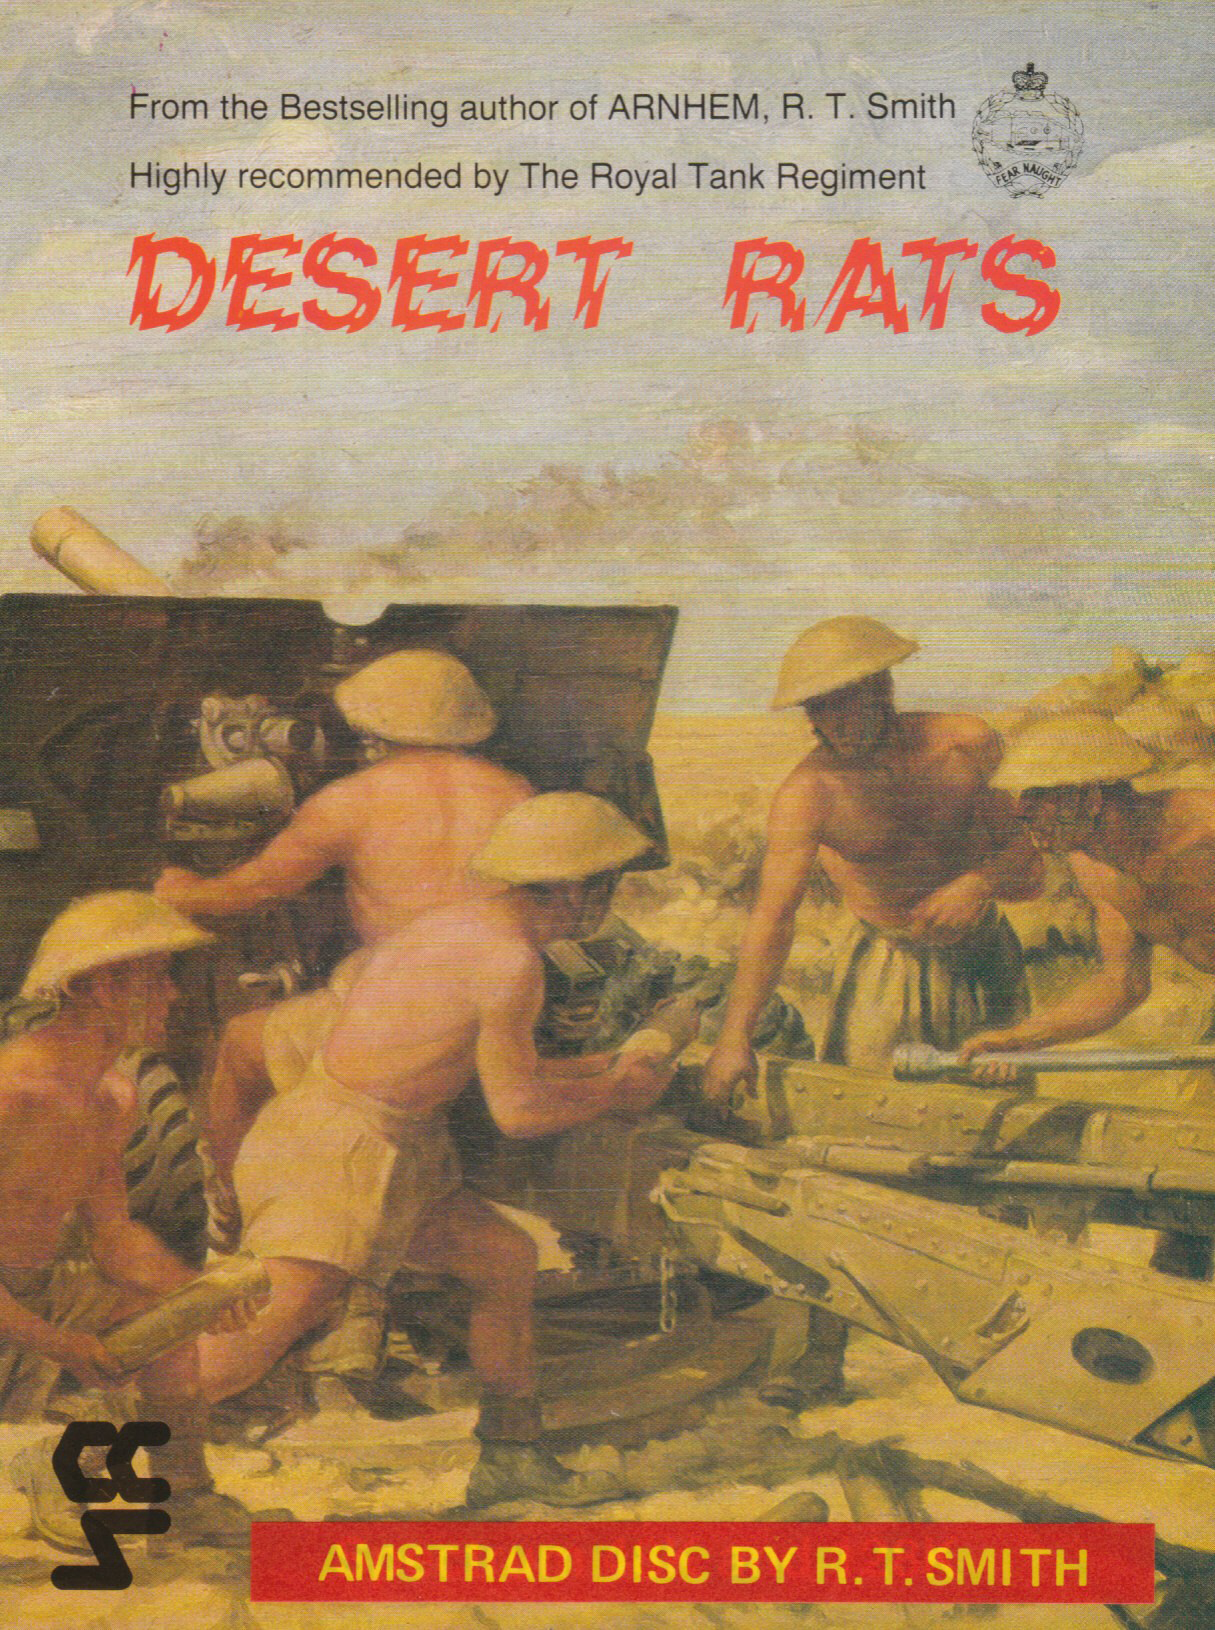 cover of the Amstrad CPC game Desert Rats  by GameBase CPC